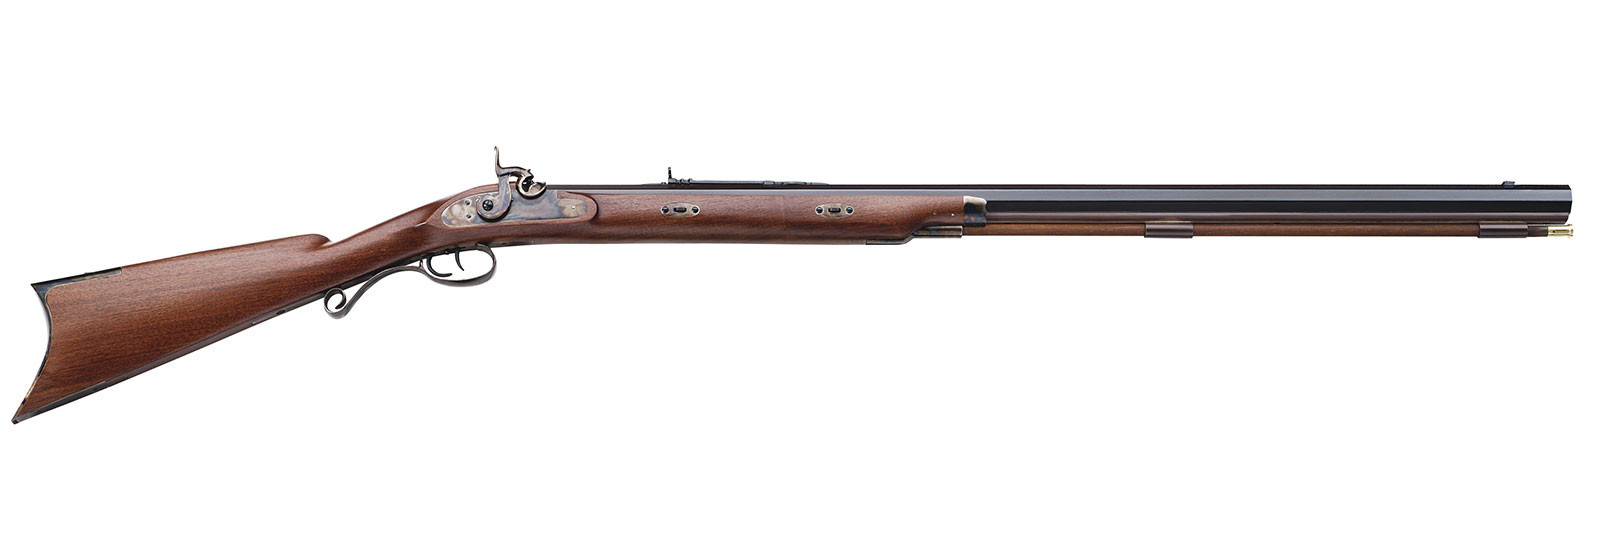 "Missouri River Hawken ""walnut"" Rifle"